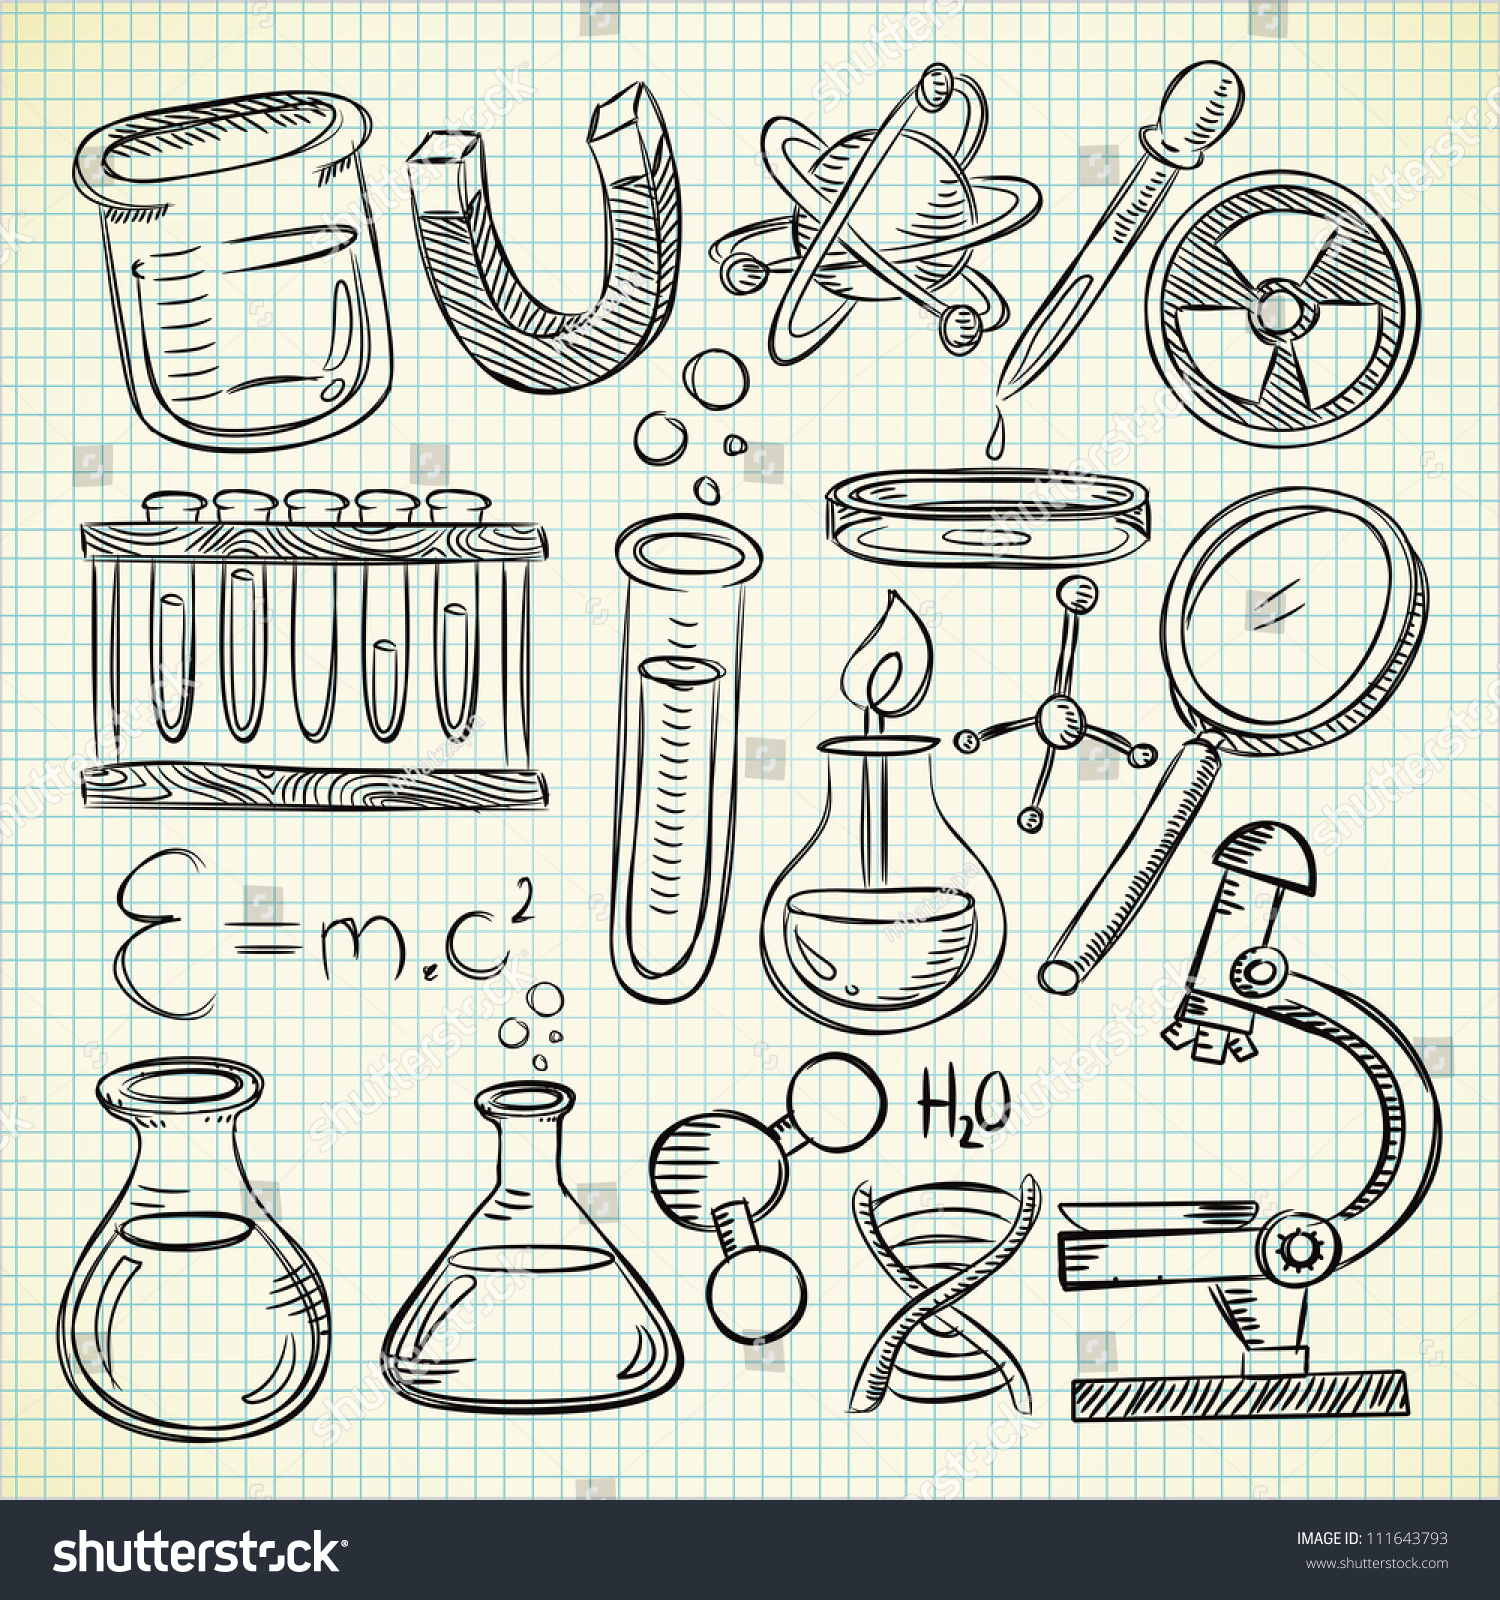 royalty free set of science object in doodle style 111643793 stock